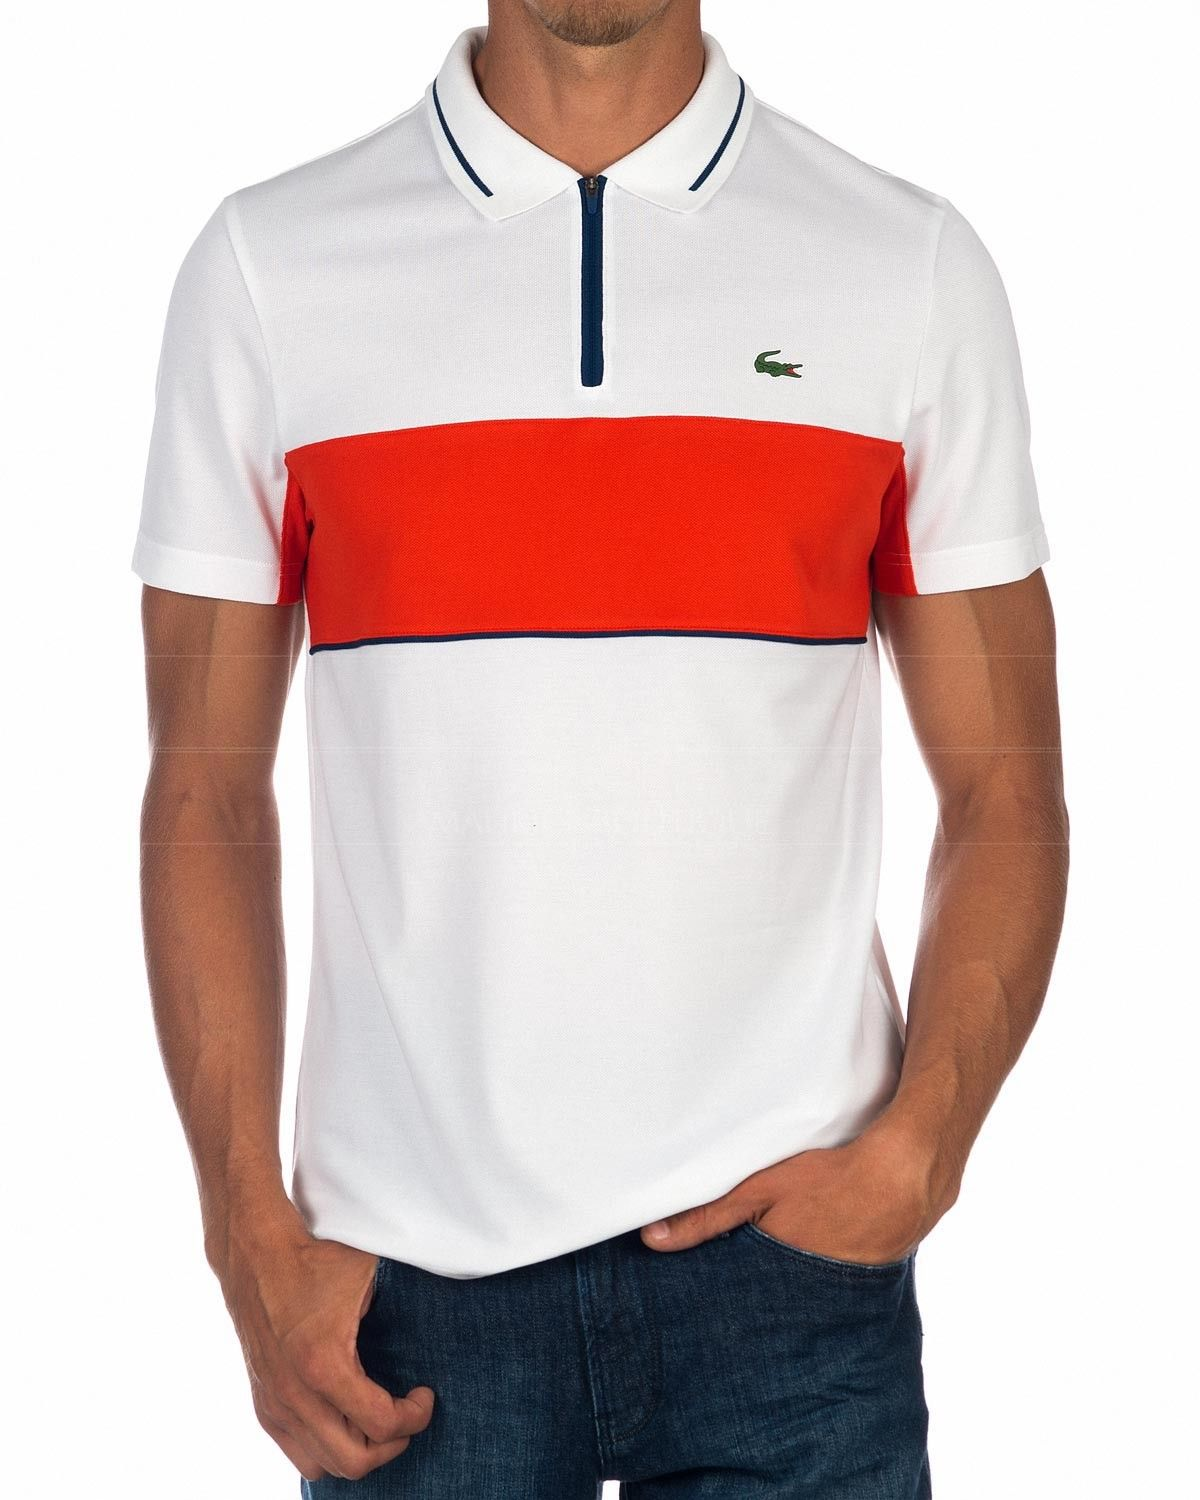 2c4f59f39e8a Lacoste Polo Sport - White   Orange in 2019